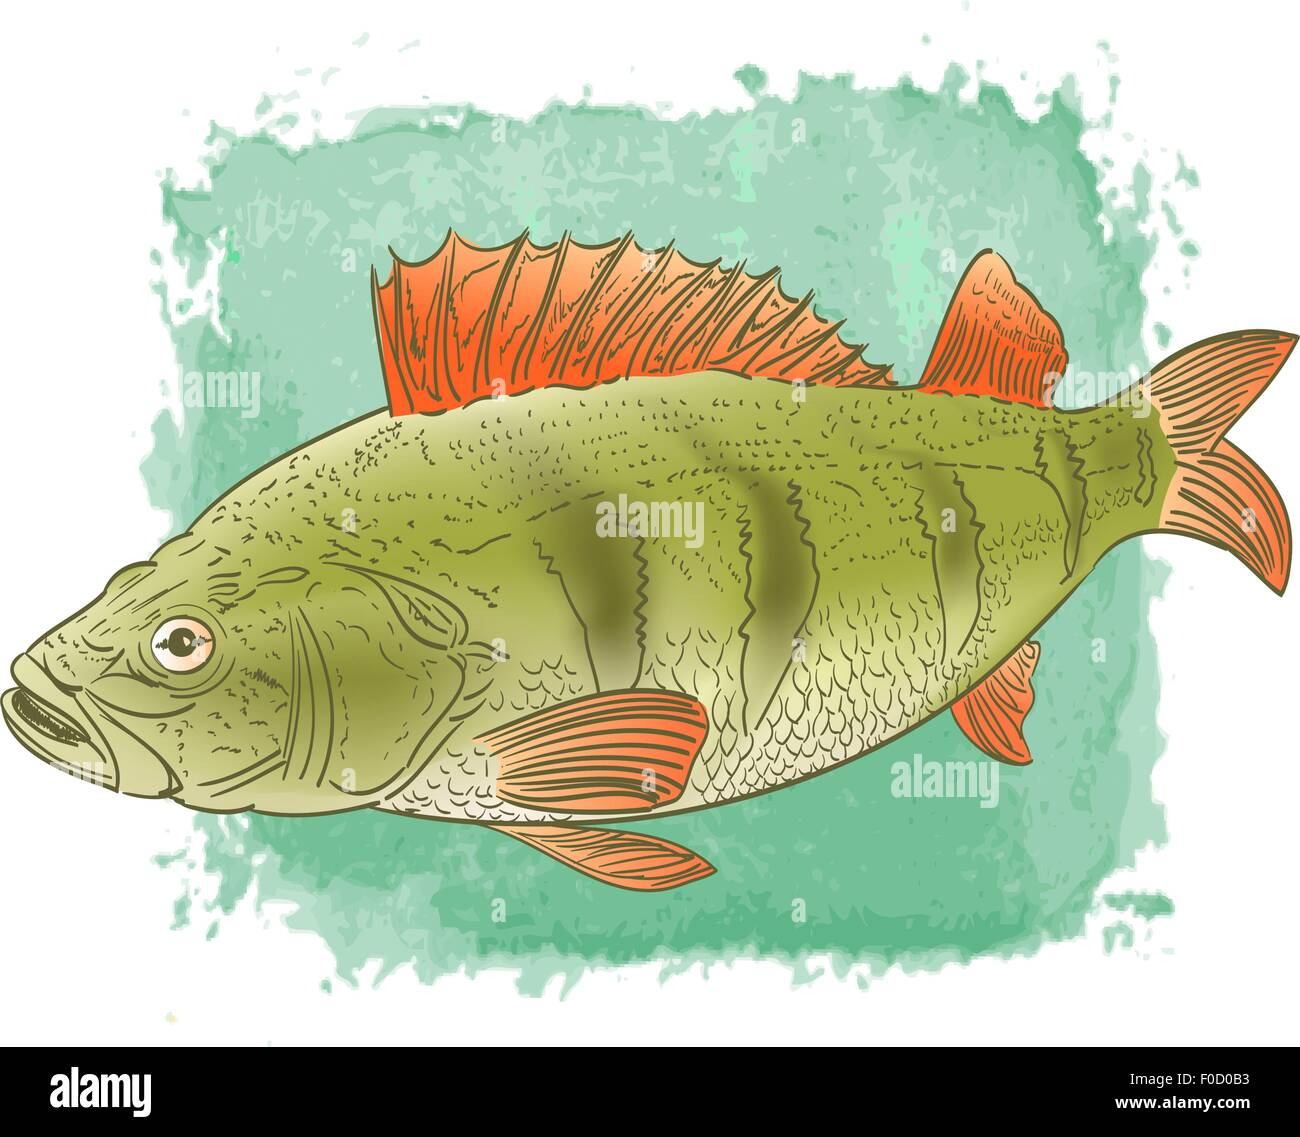 Watercolor Fish Illustration Stock Photos & Watercolor Fish ...